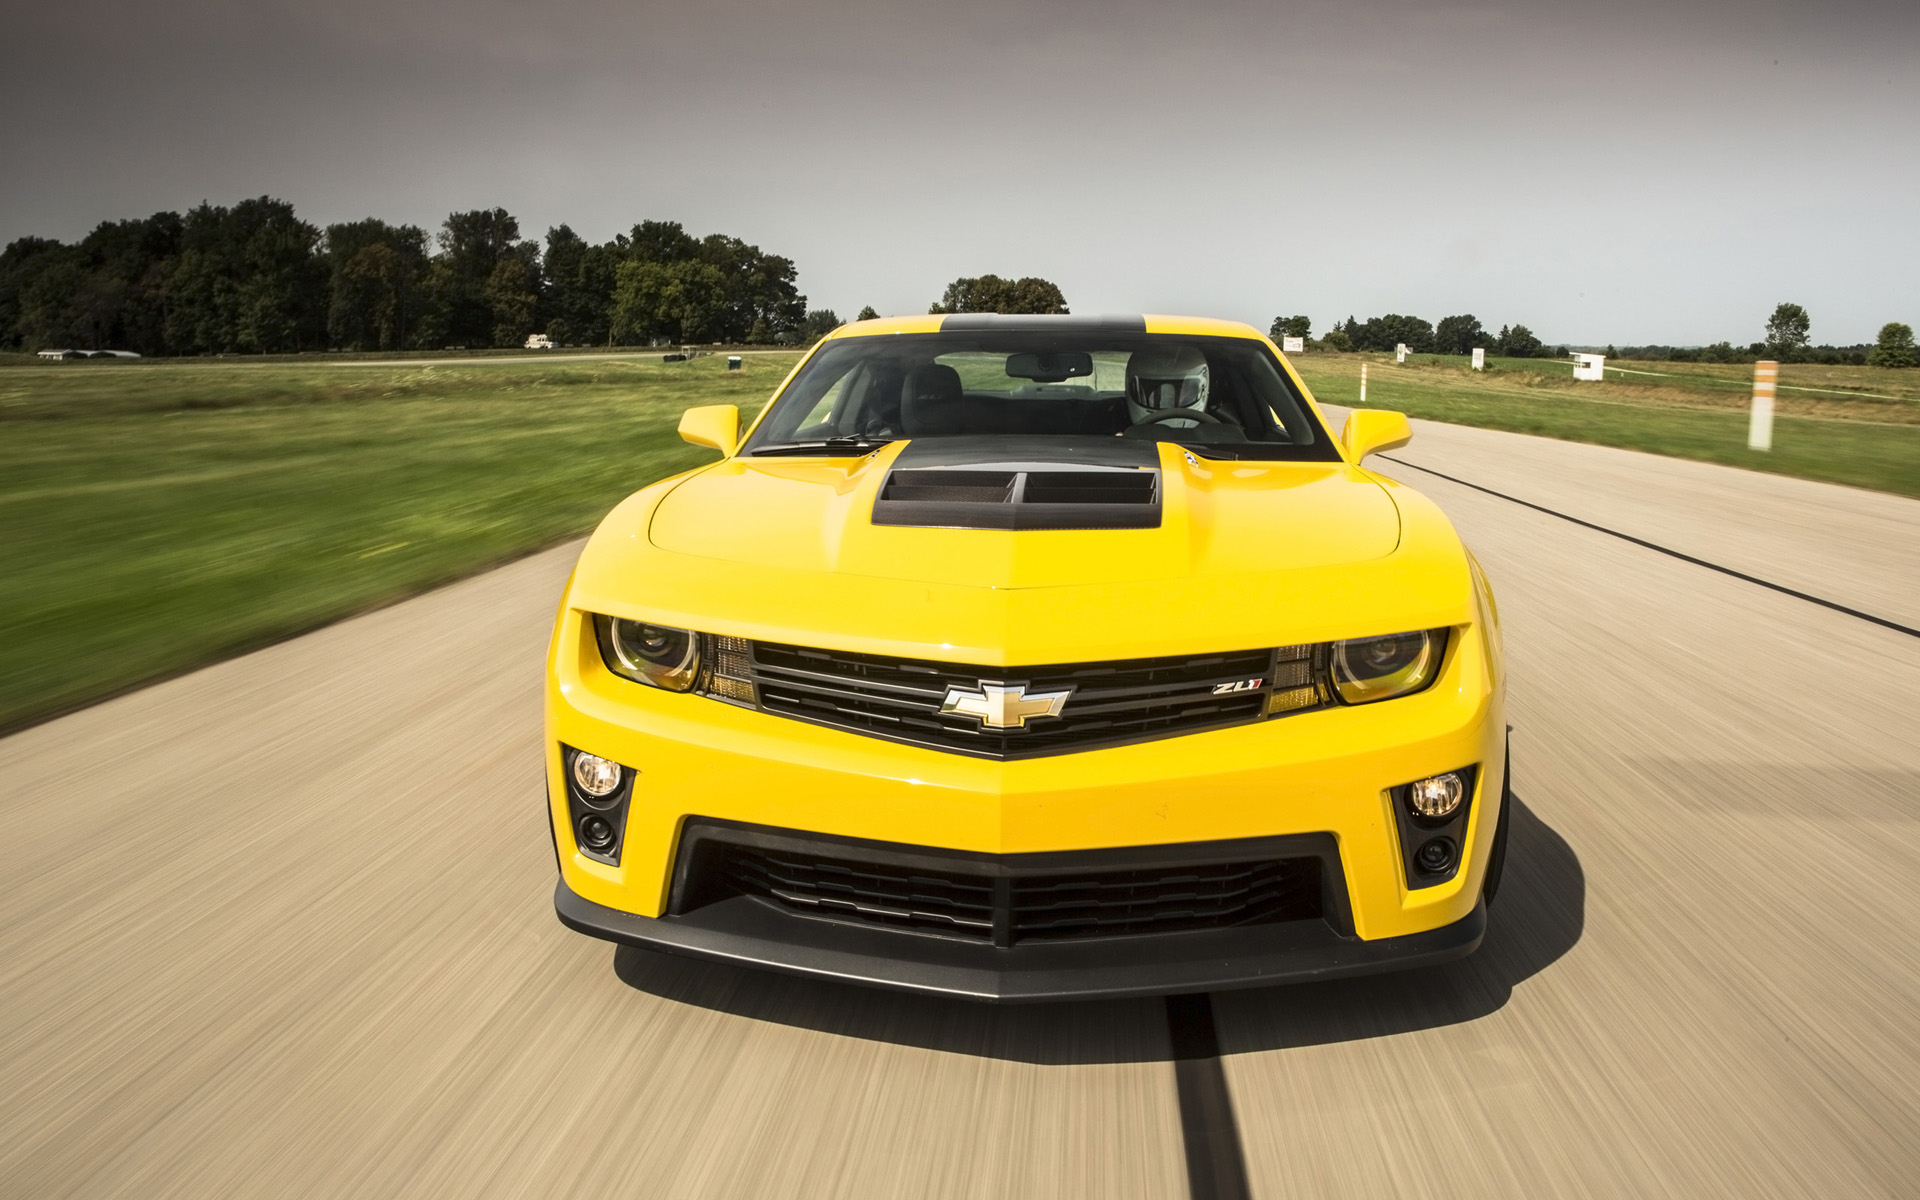 2014 Chevrolet Camaro ZL1   Coupe   Motion   1   1920x1200   Wallpaper 1920x1200